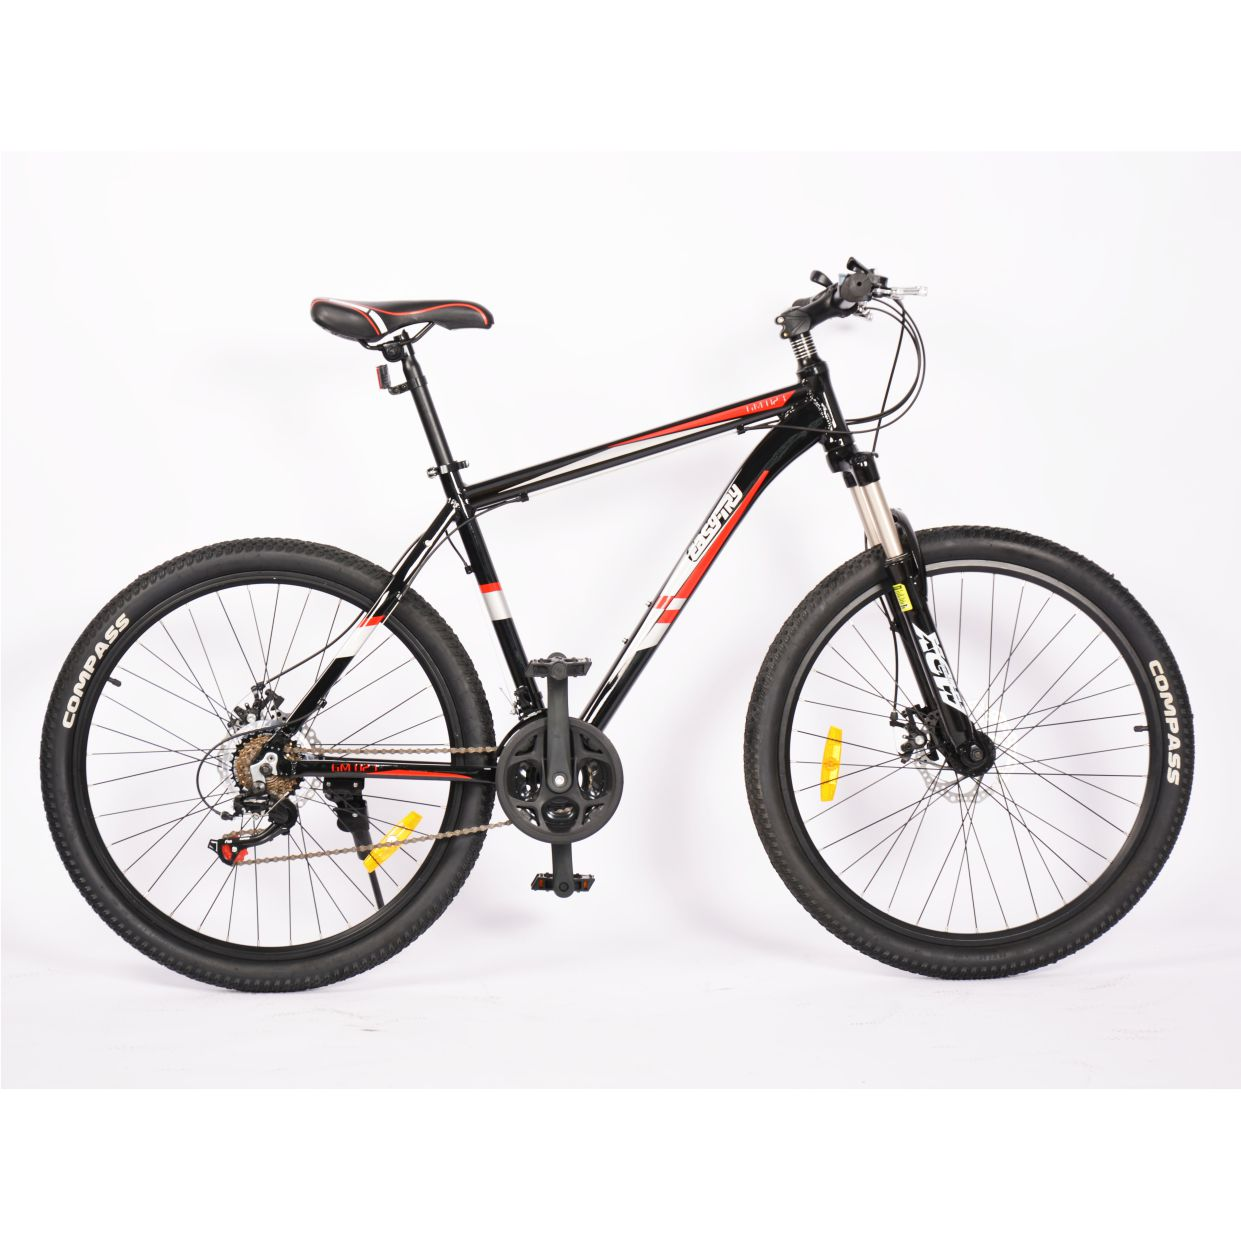 Customized Super cheap OEM mountain bike bicycles new bicycle